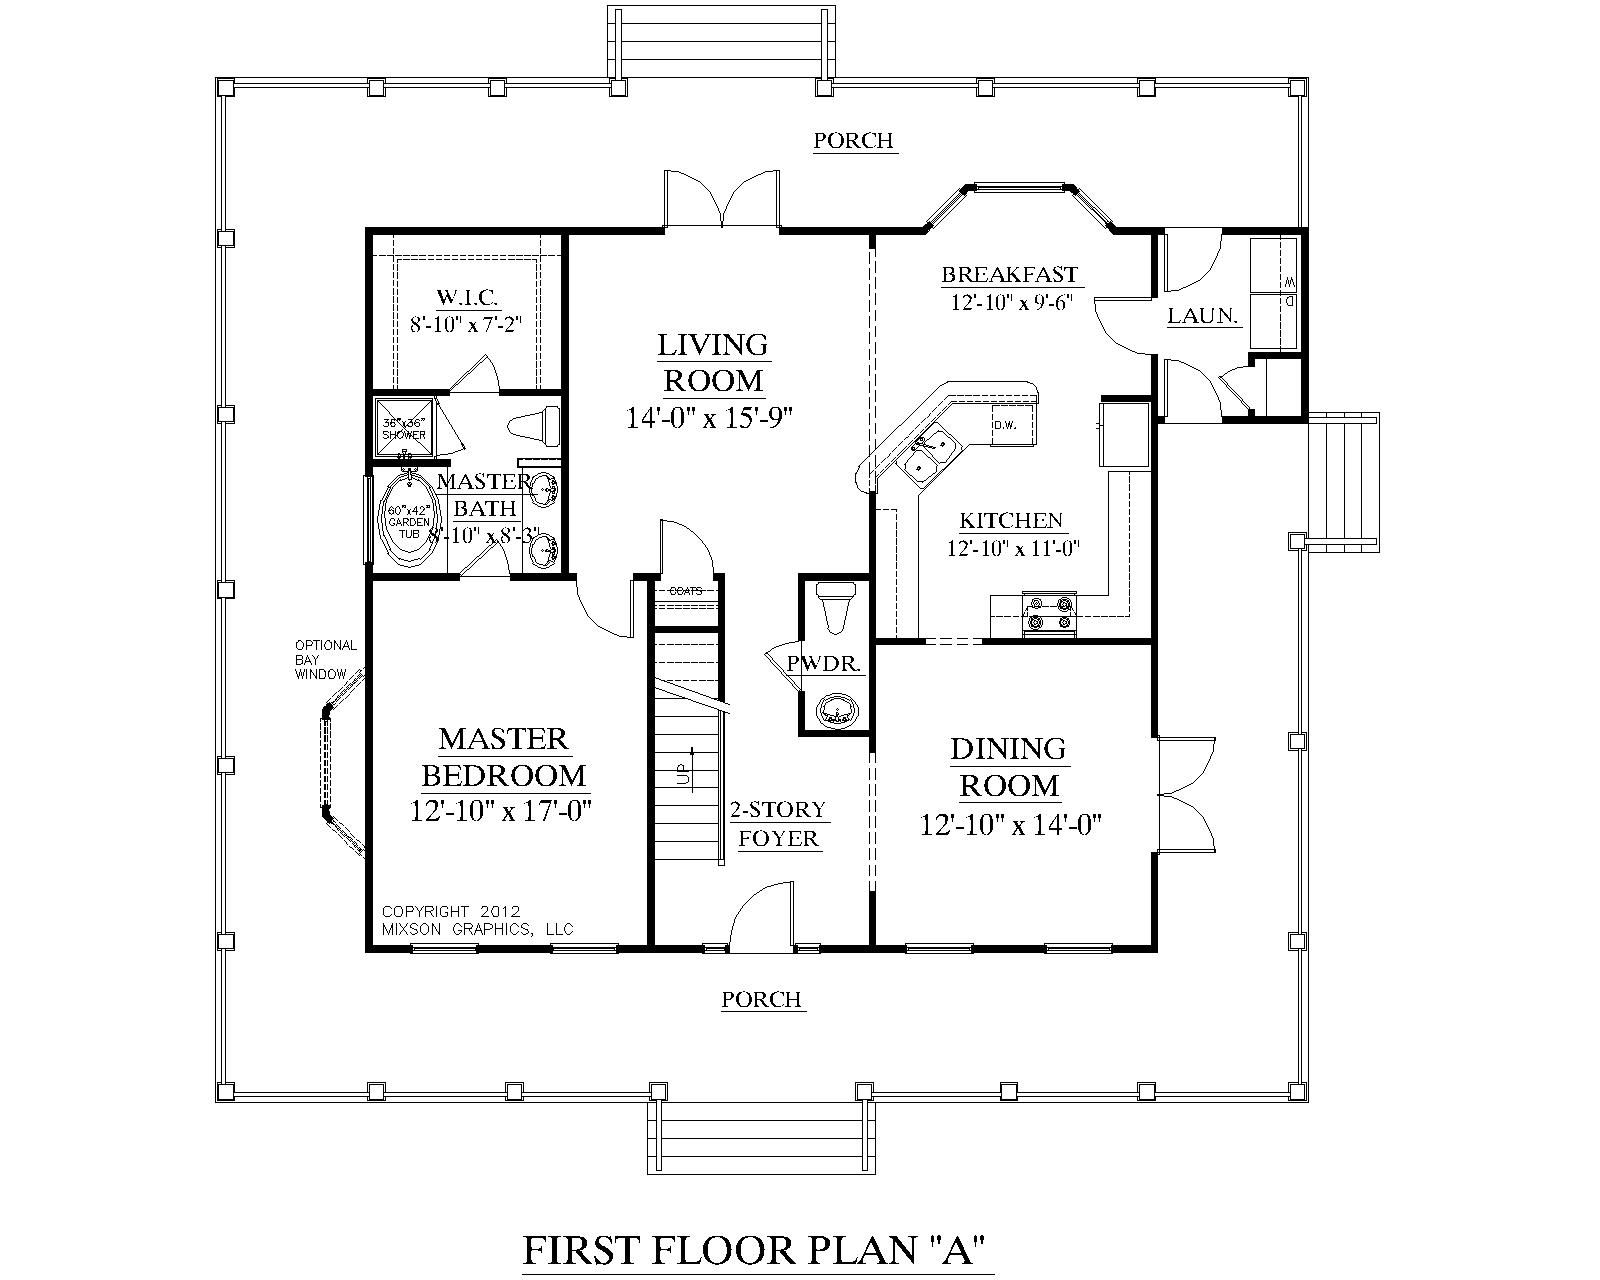 One Bedroom House Floor Plans small one bedroom house plans | traditional 1-1/2-story house plan